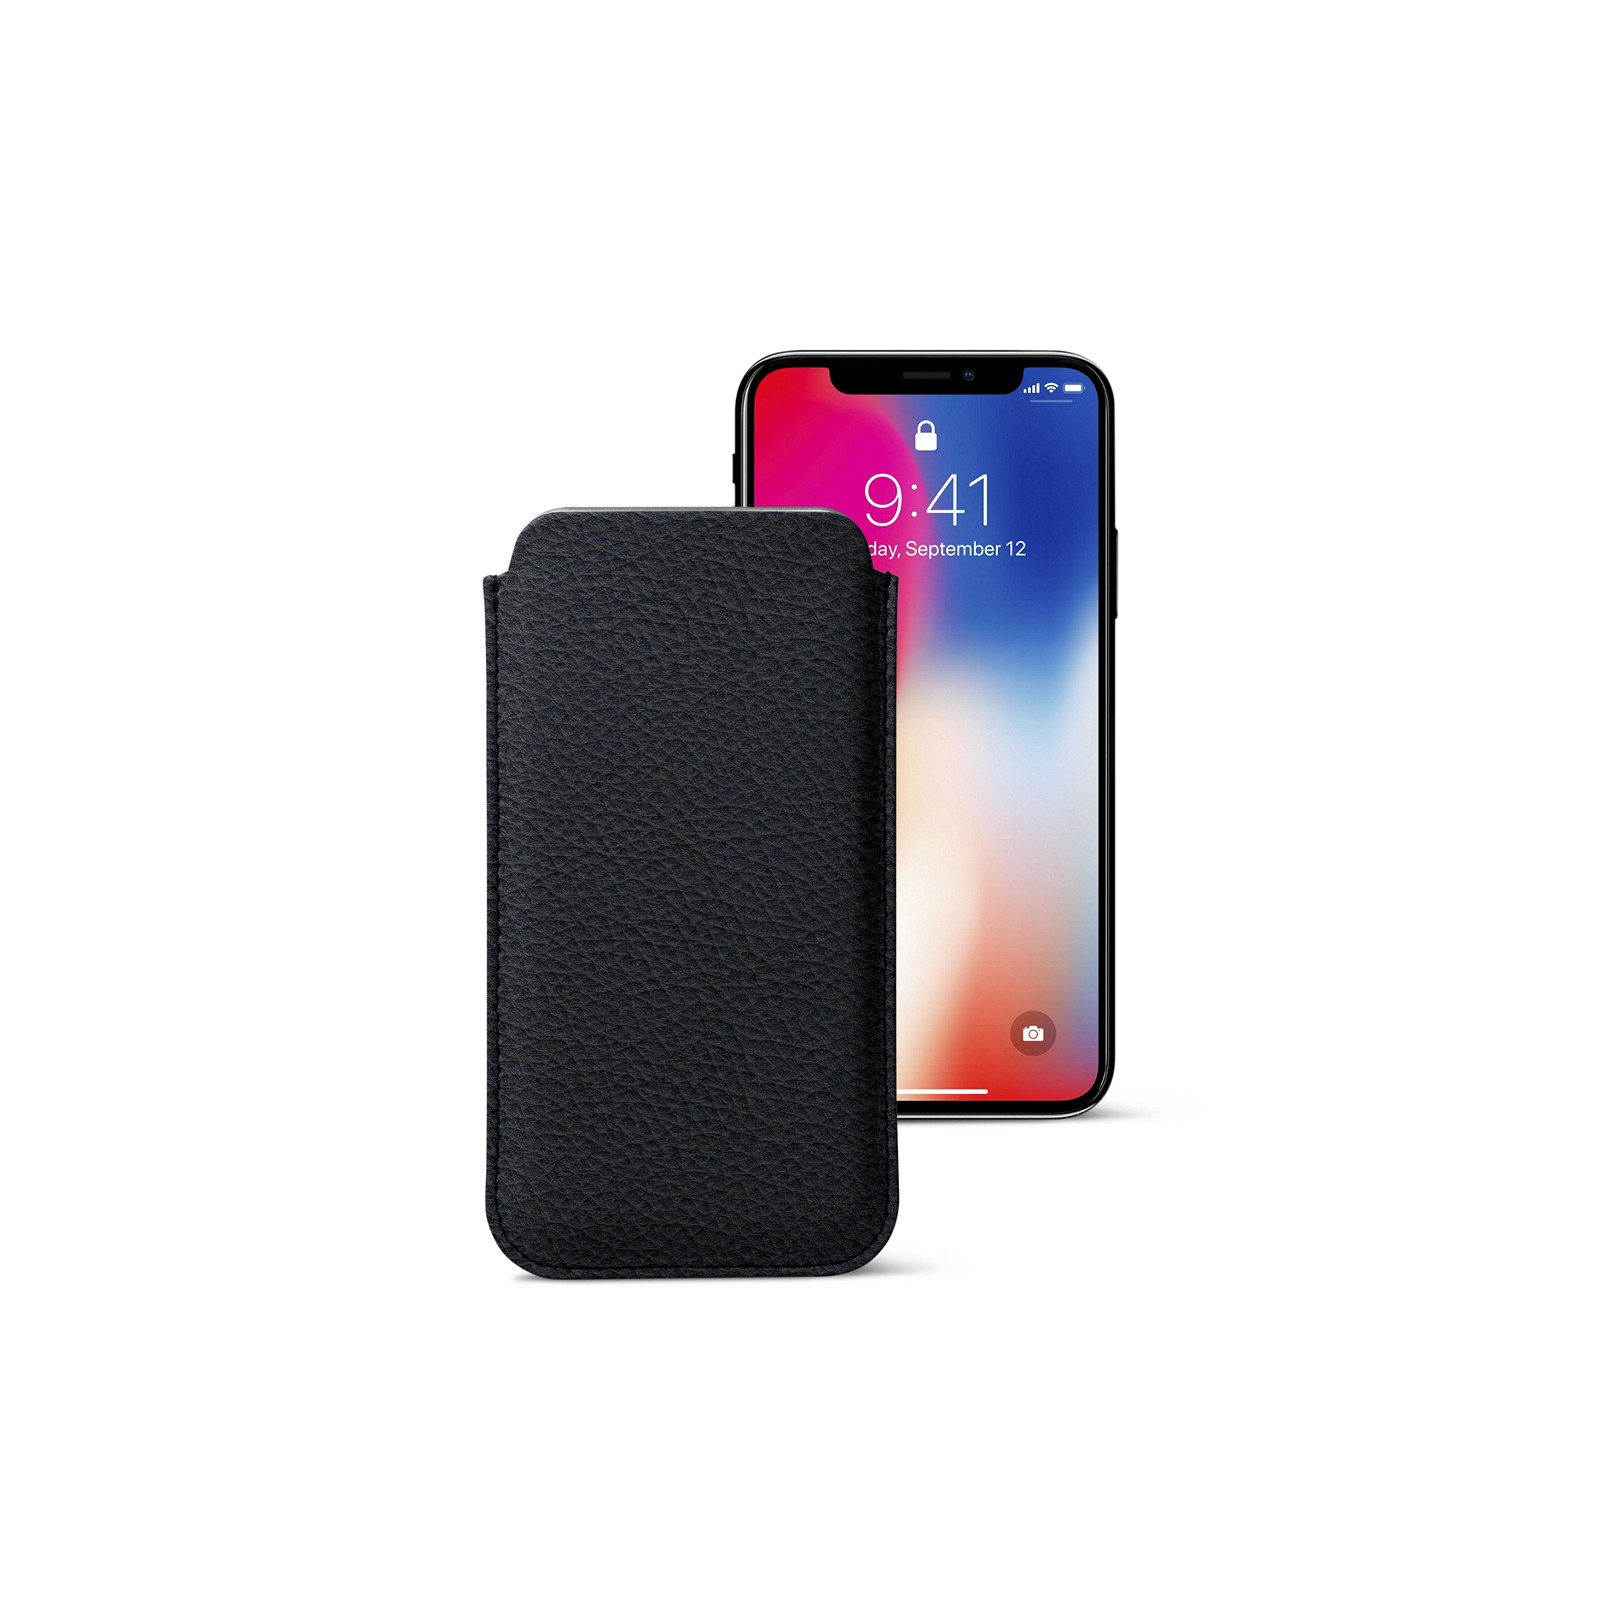 9ae9ccab14b337 Classic Case for iPhone X Navy Blue - Granulated Leather Classic Case for  iPhone X Navy Blue - Granulated Leather 